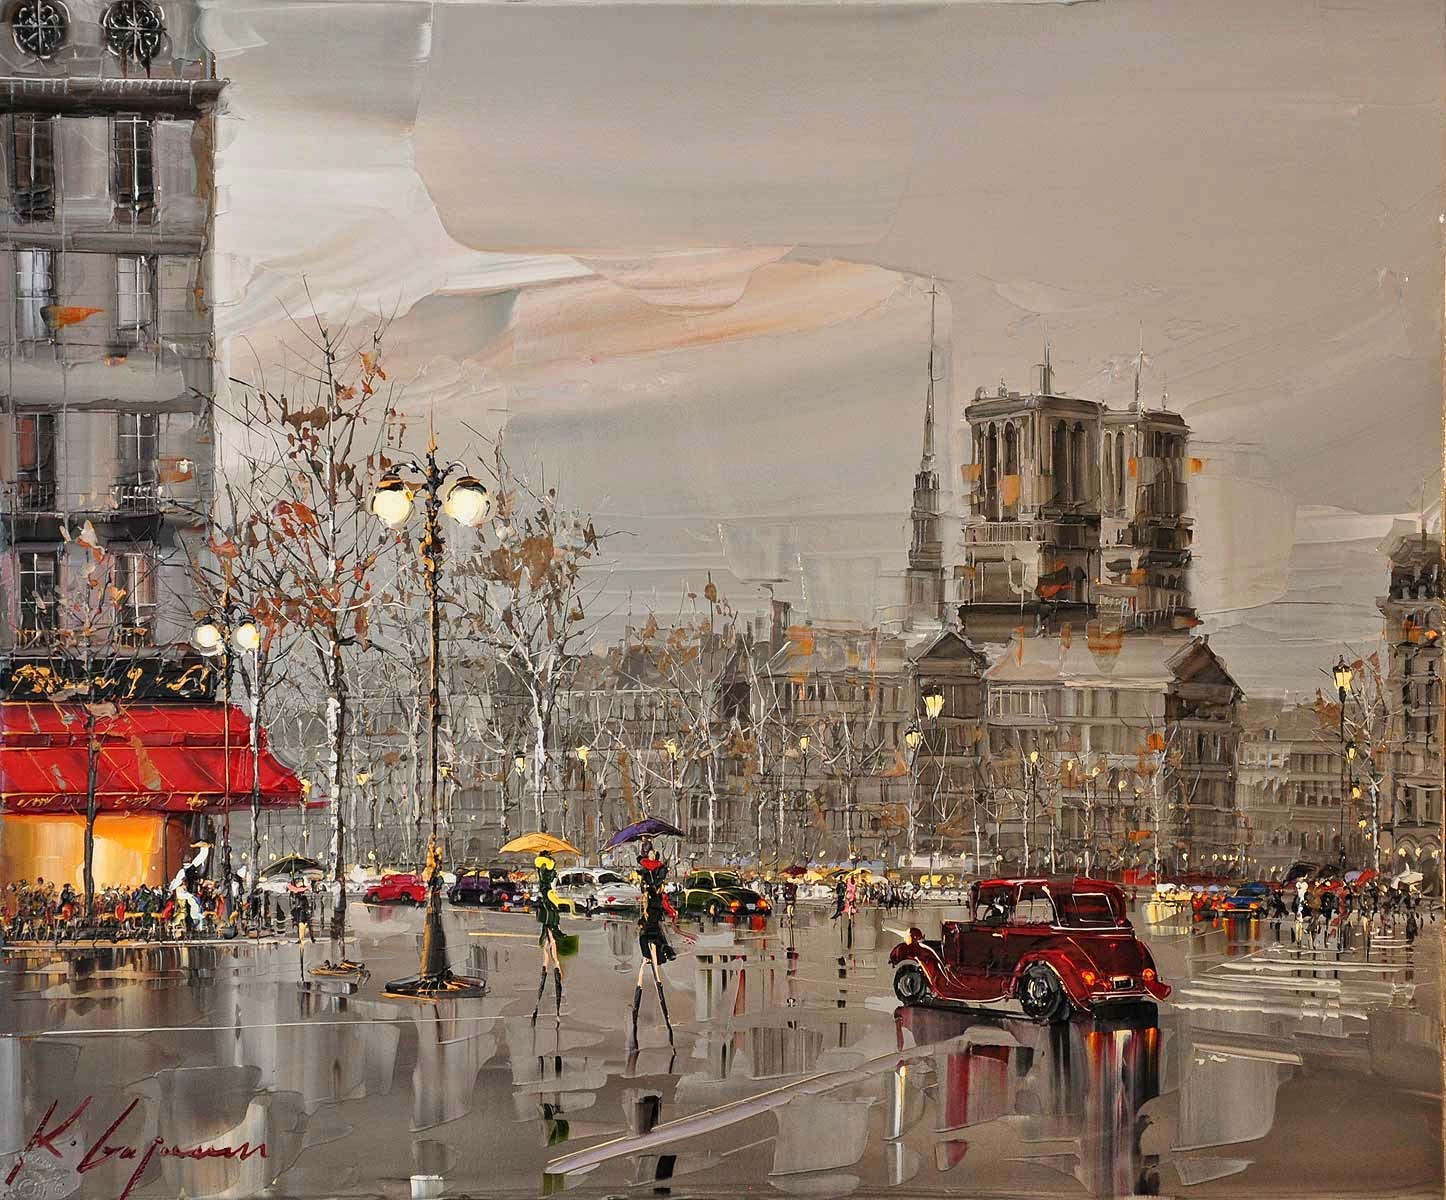 03 París-Kal-Gajoum-Paintings-of-Dream-Like Cities-of-the-World-www-designstack-co